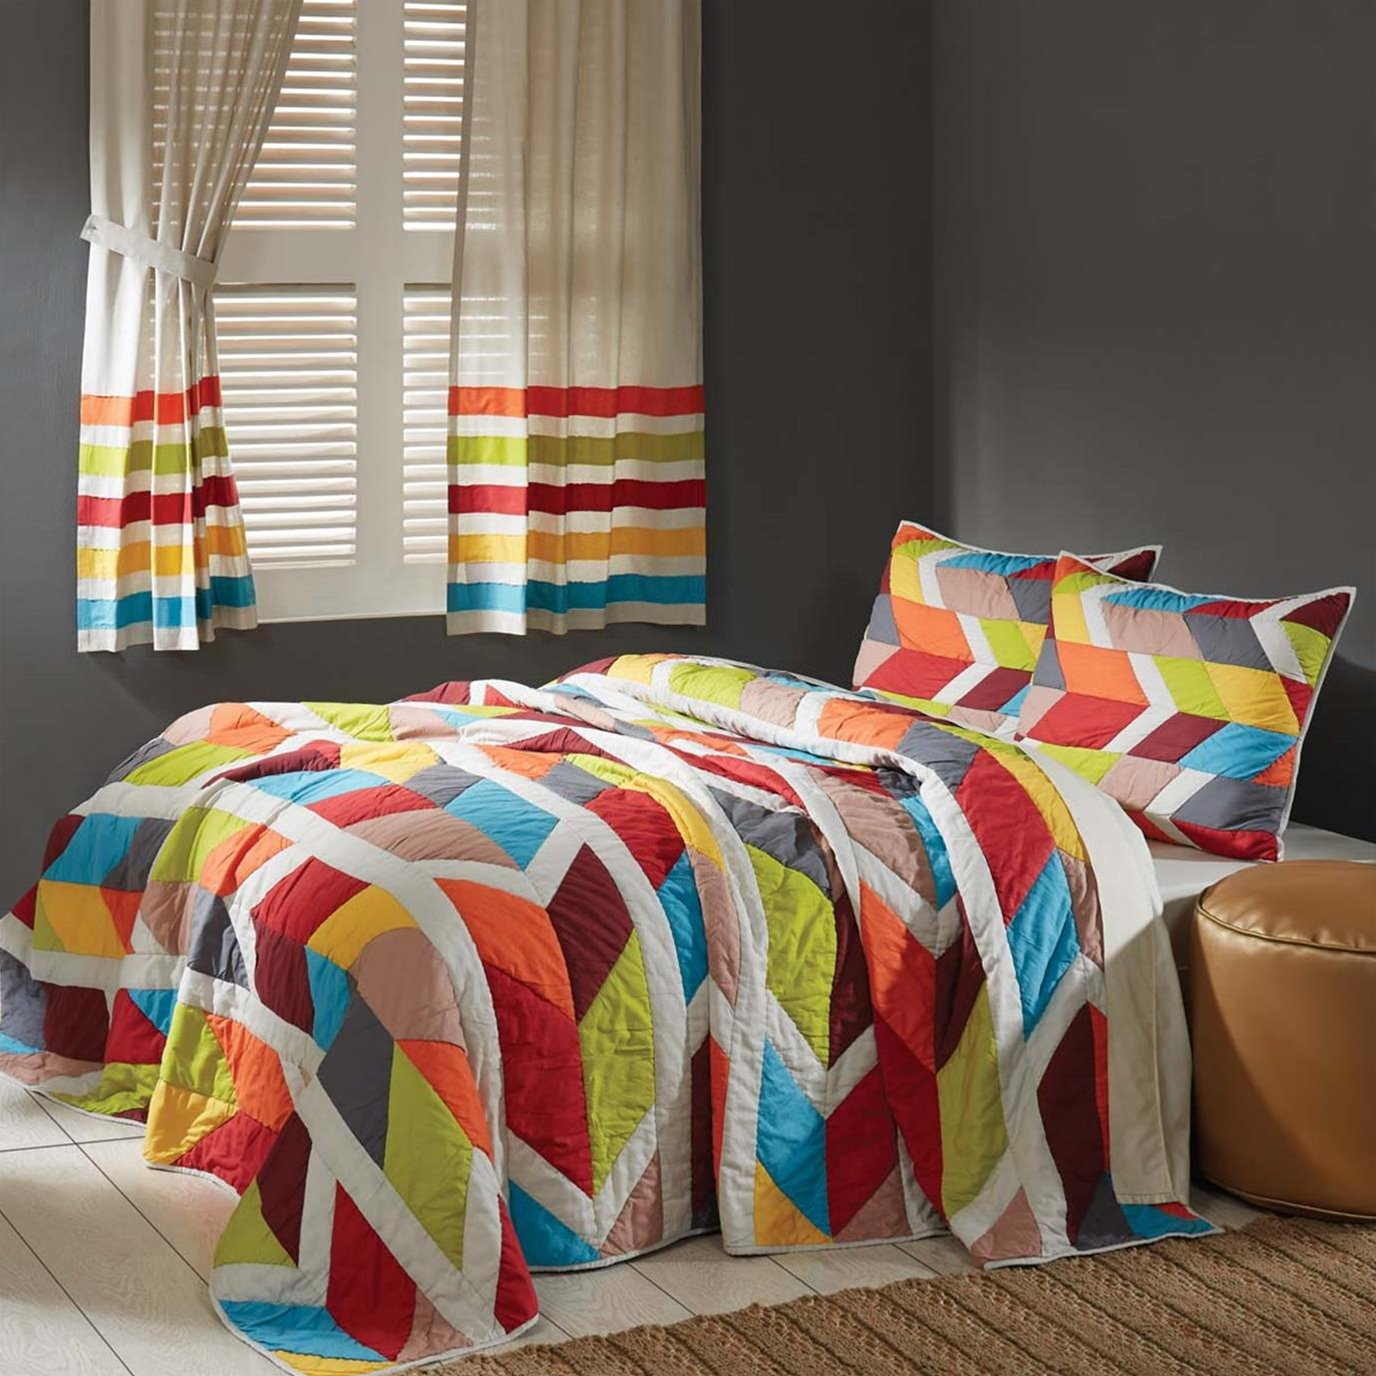 Rowan Queen Set; Quilt 90Wx90L-2 Shams 21x27